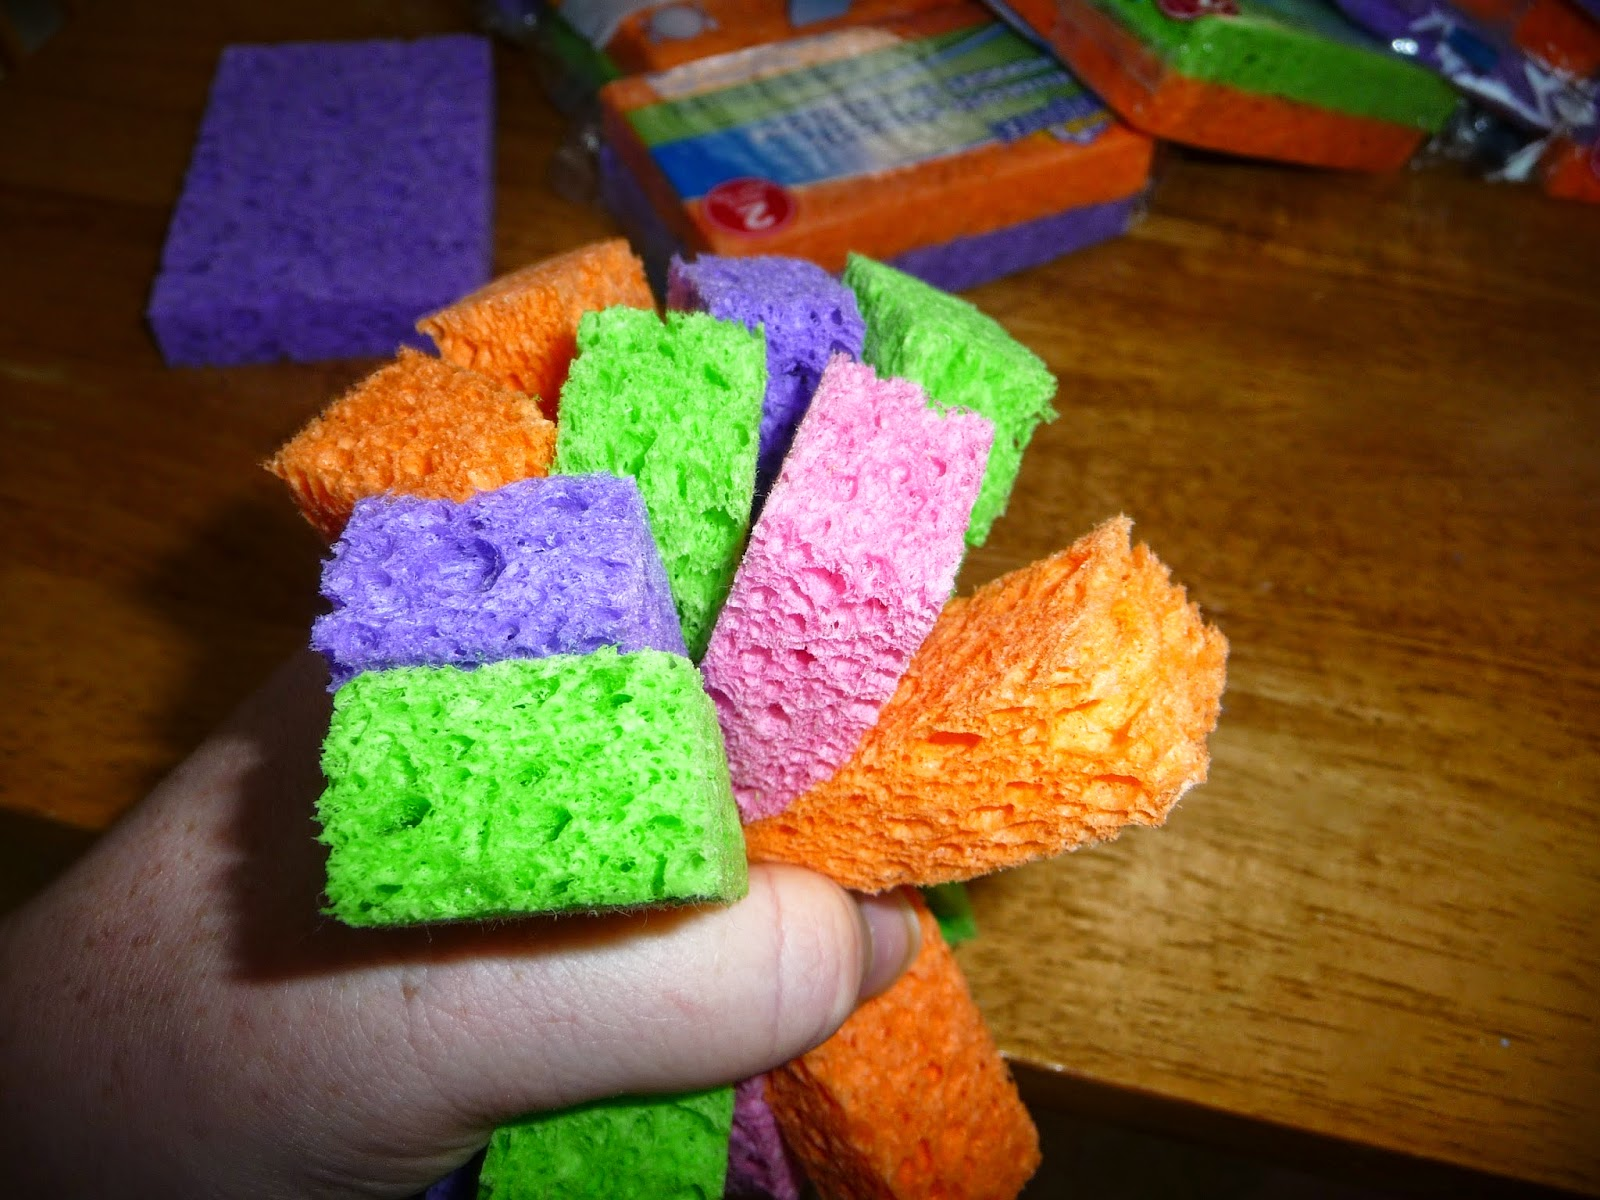 sponge bombs are the water balloon fight alternative, easy to make and easy to clean up water balloon fight alternative, sponge bombs,